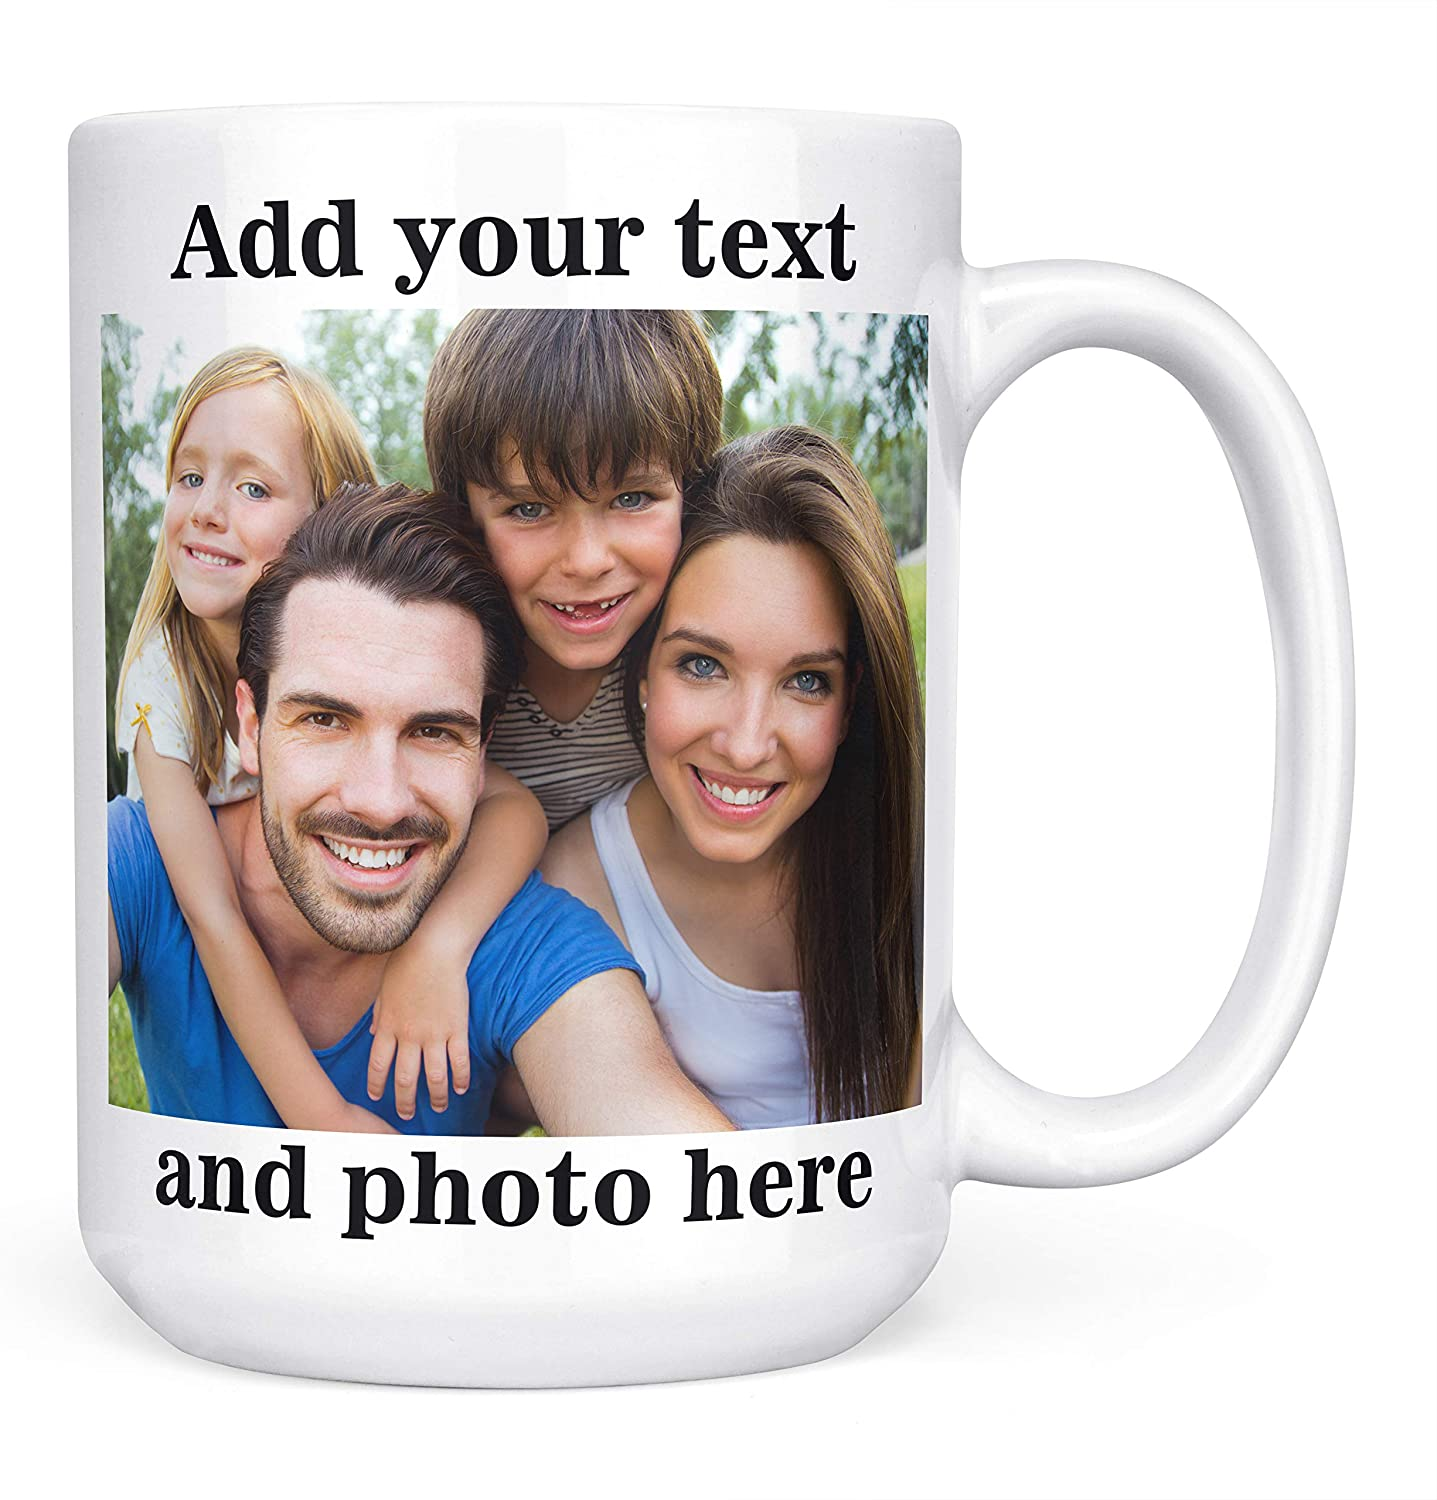 personalized gifts for dad custom photo mug